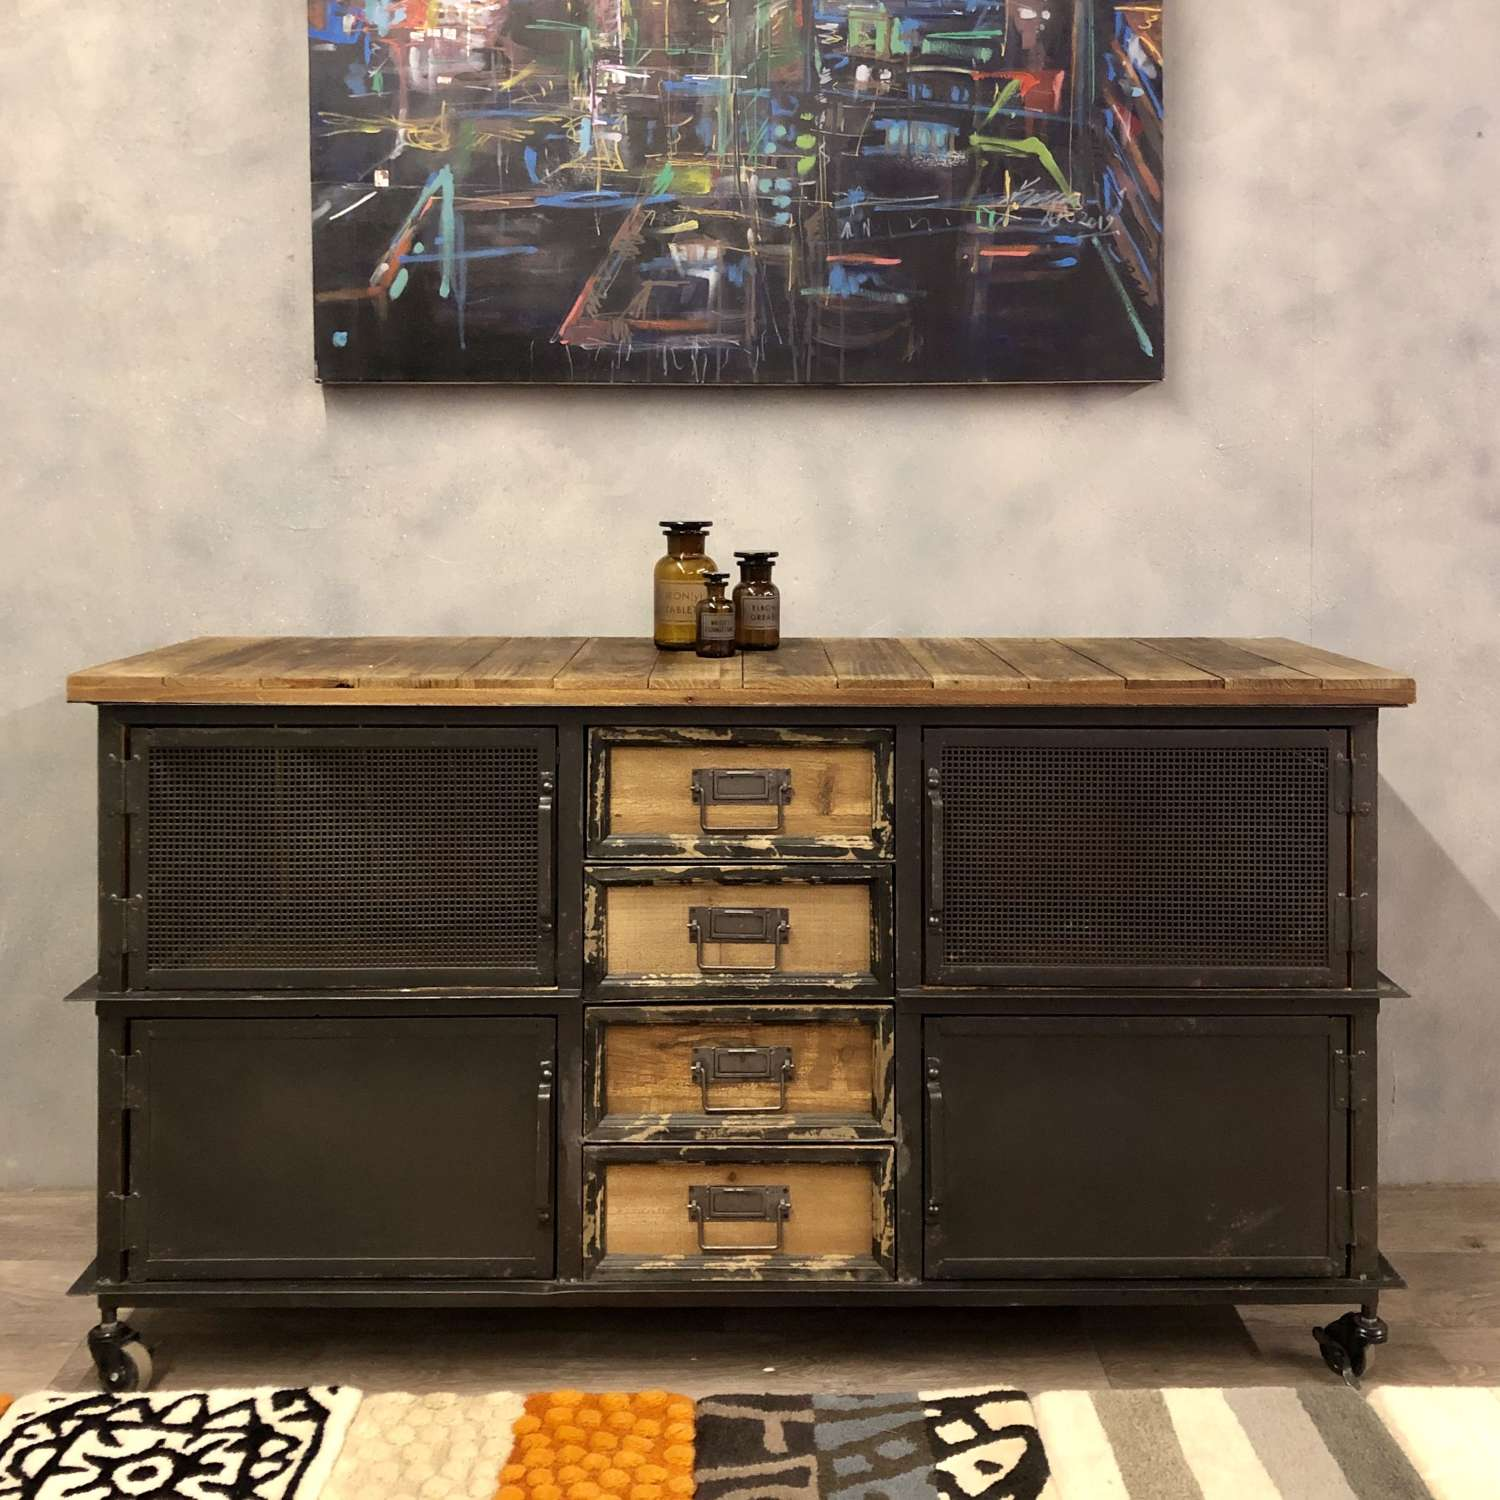 Industrial style media unit or sideboard